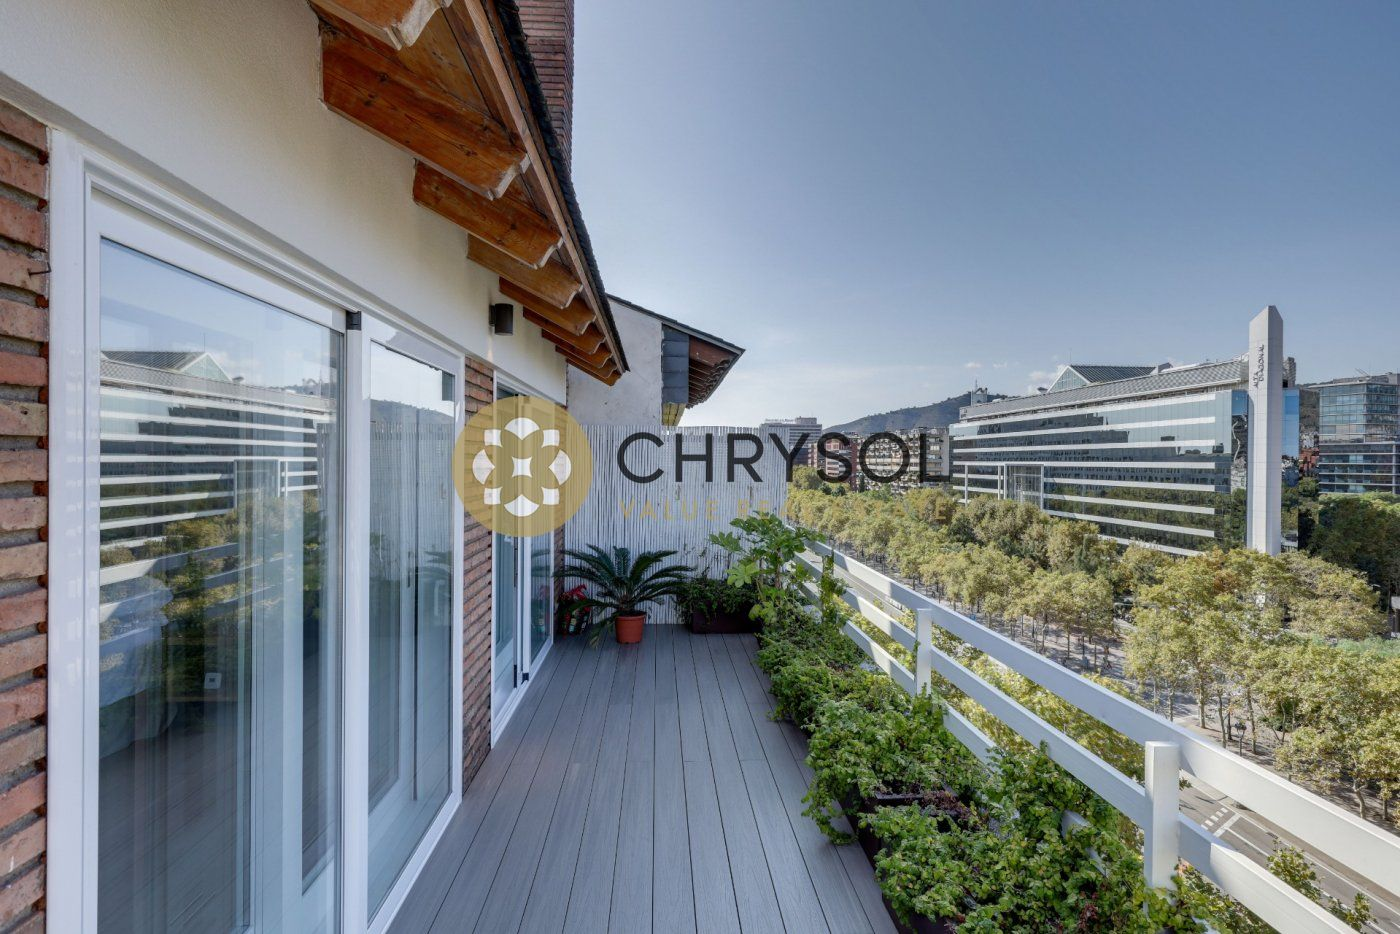 Photogallery - 49 - Chrysol Value